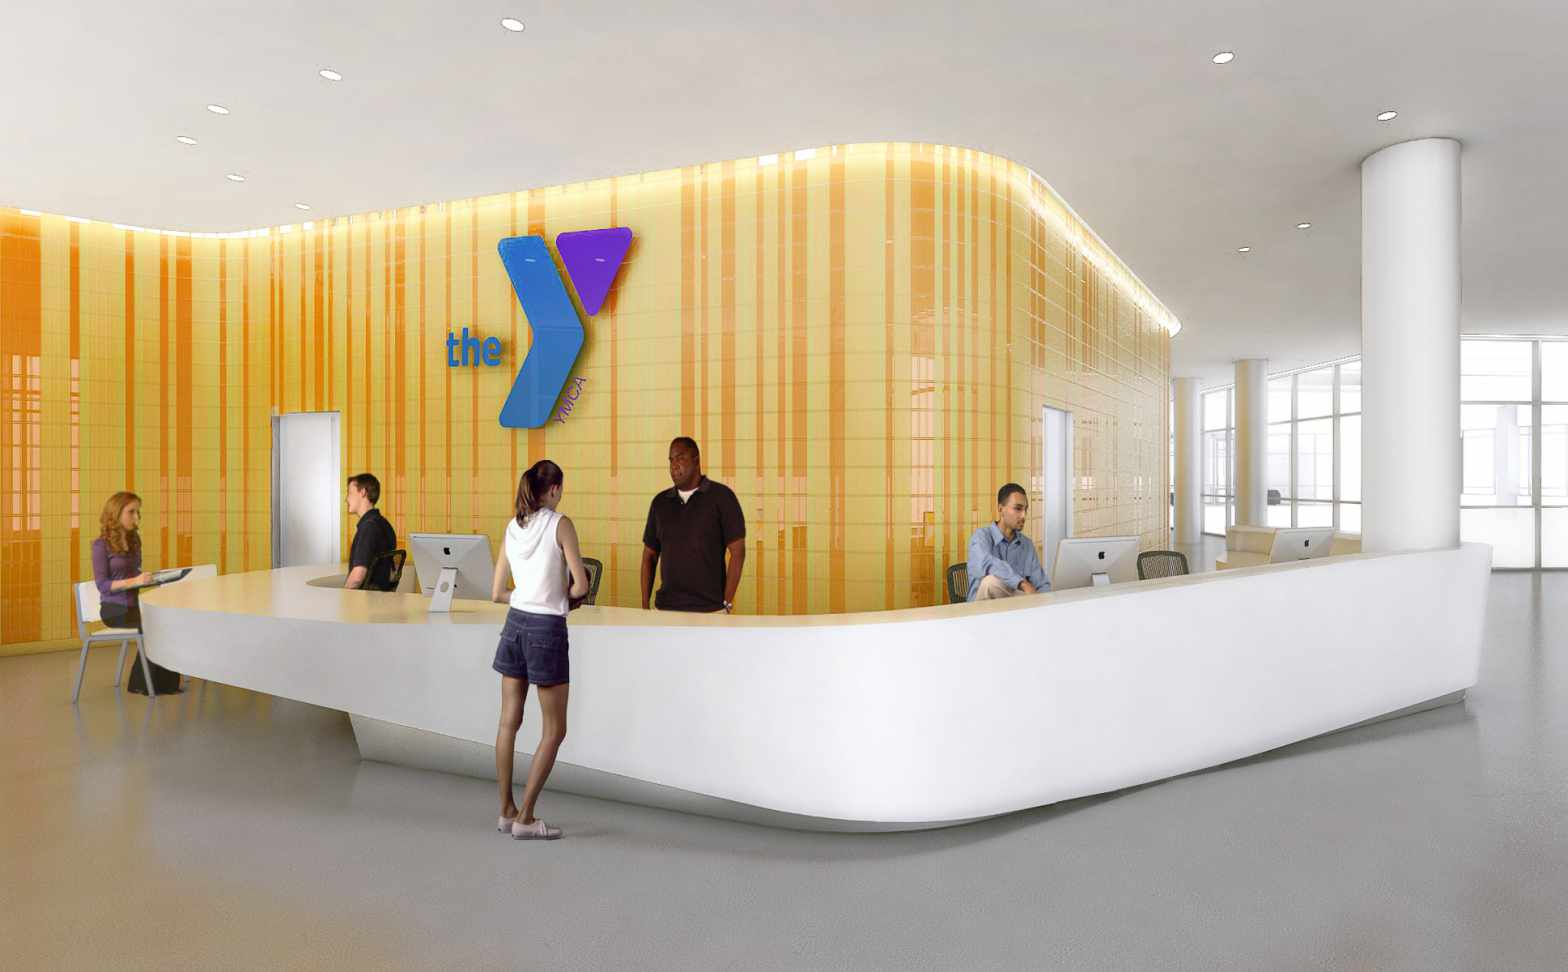 The YMCA at La Central, rendering by FXFOWLE